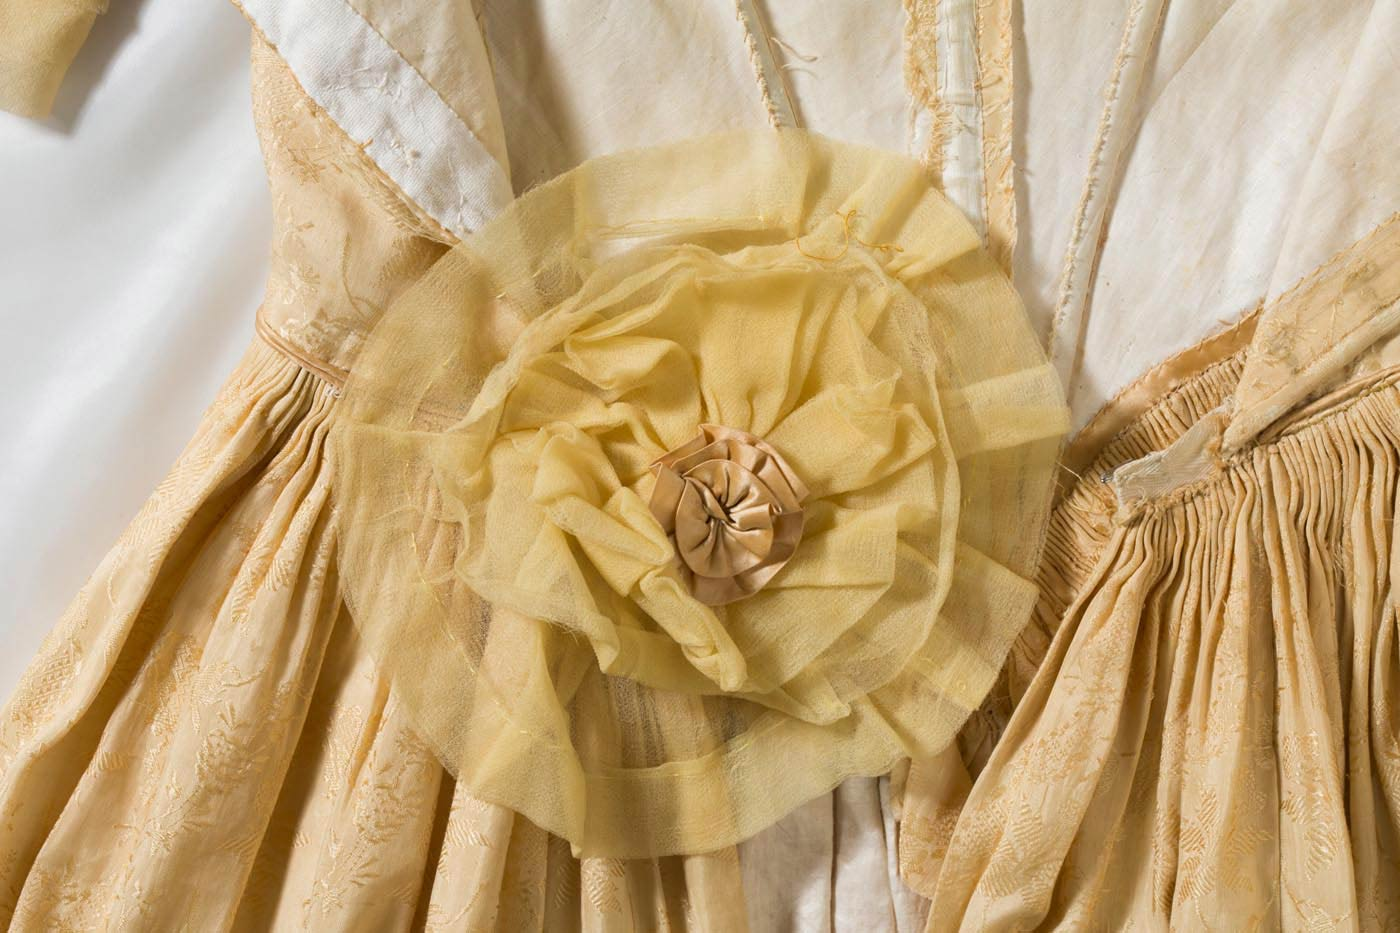 Gold silk chiffon and satin rosette detail. - click to view larger image